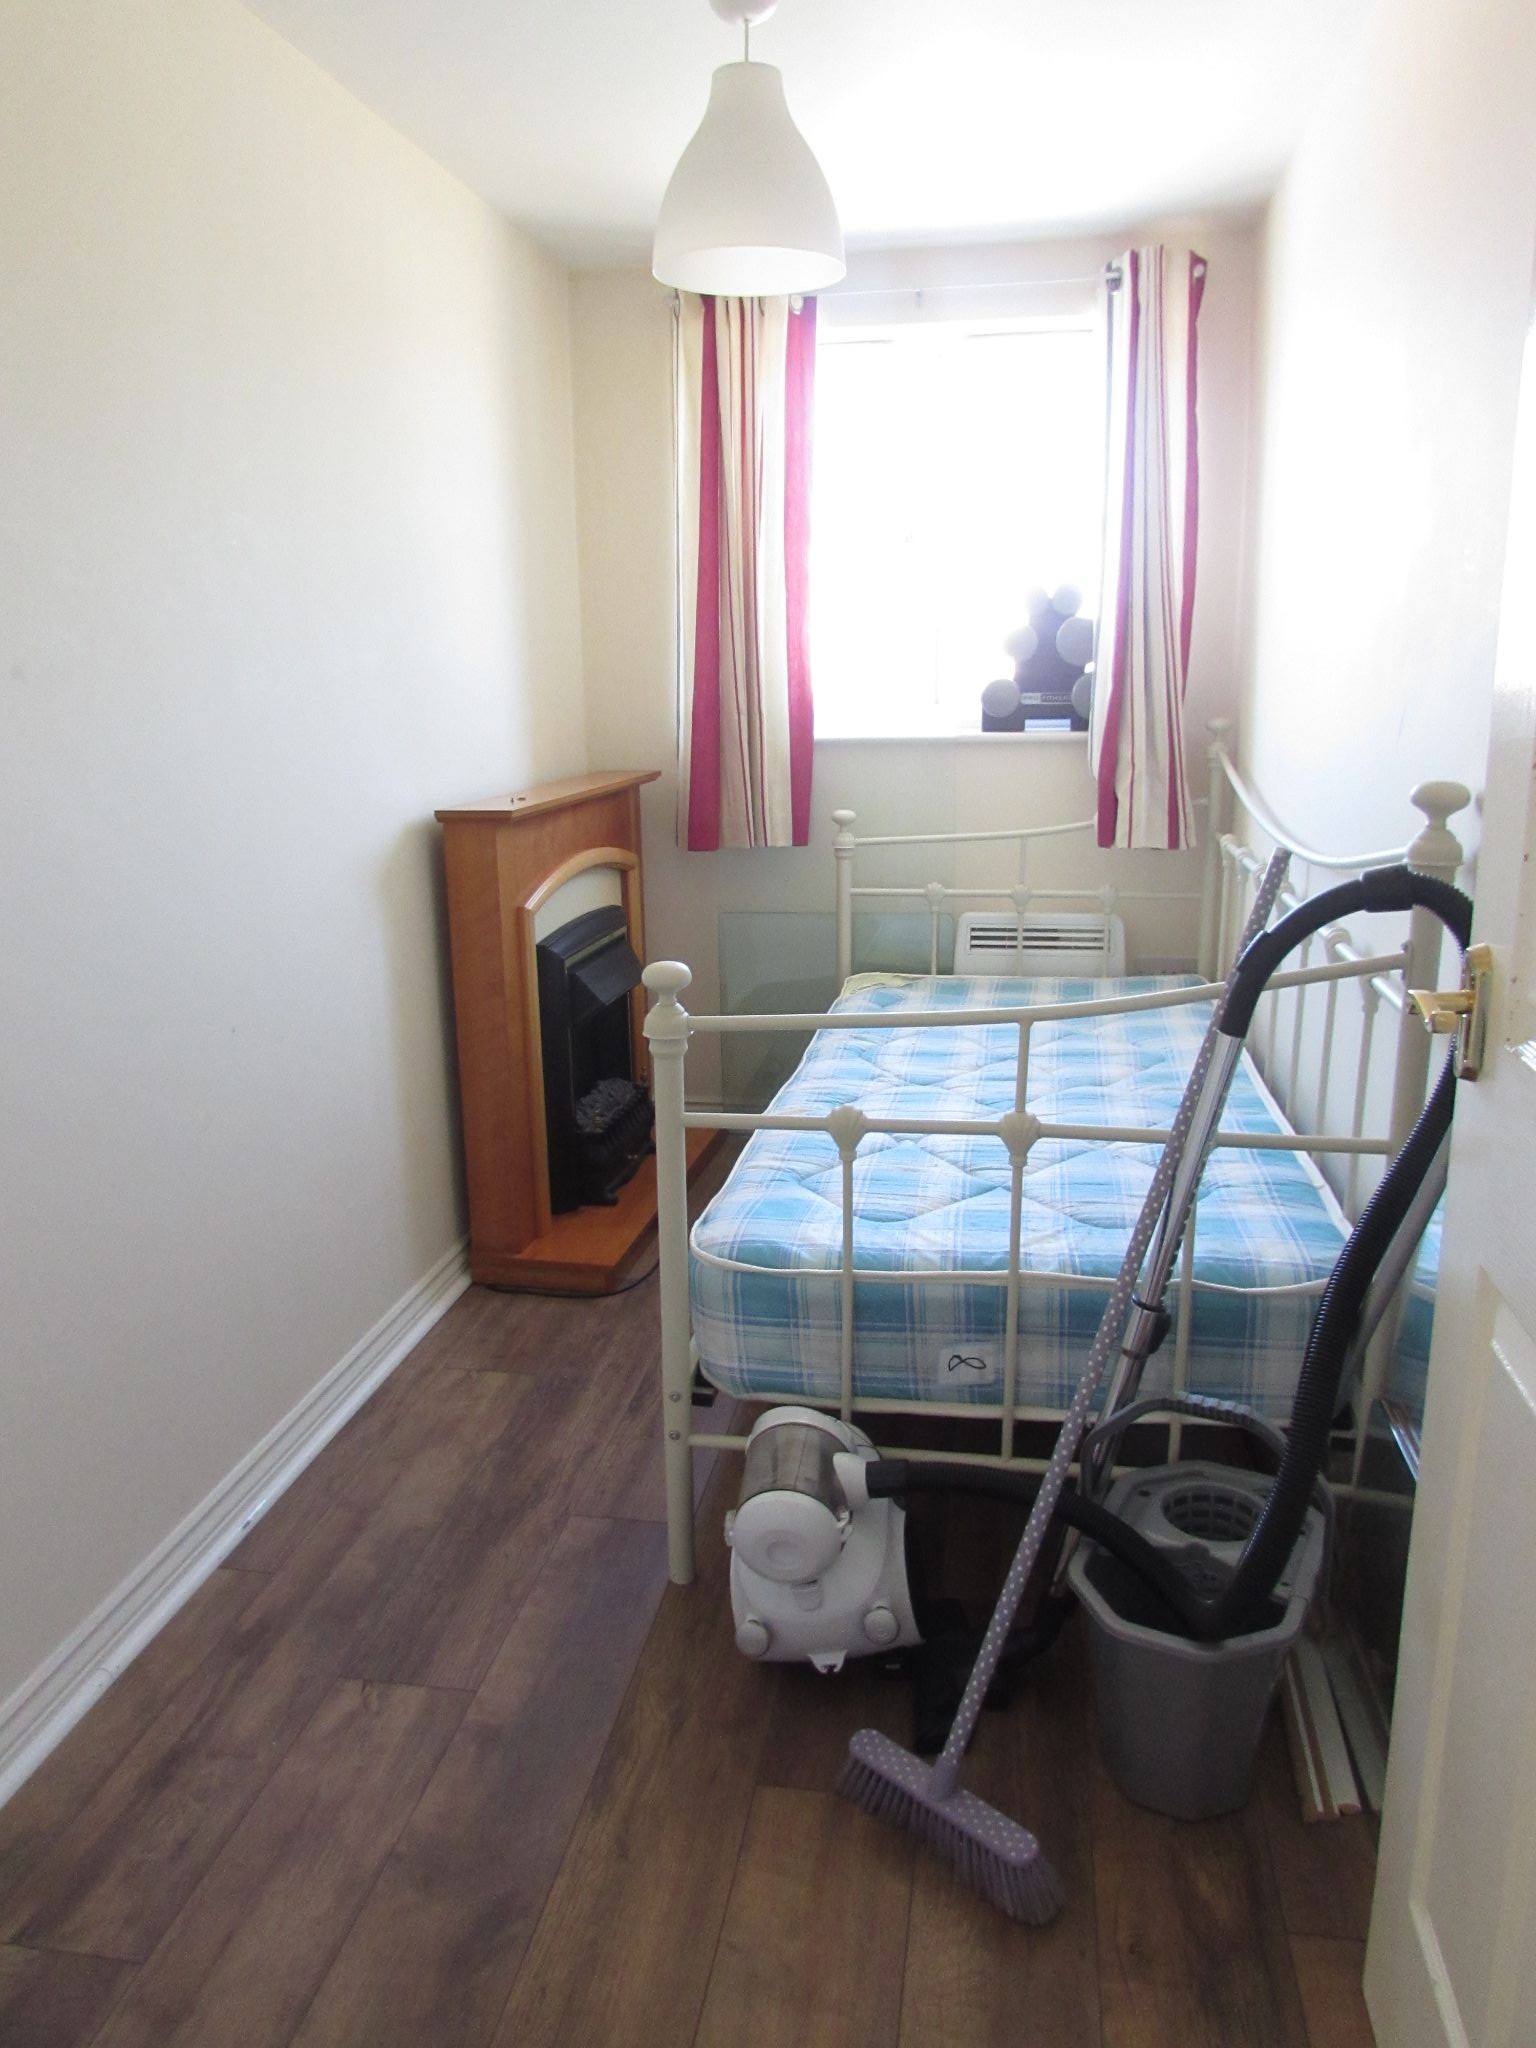 2 Bed Apartment Manchester 2 Bedroom Apartment Flat Apartment To Rent In Flat Actonville